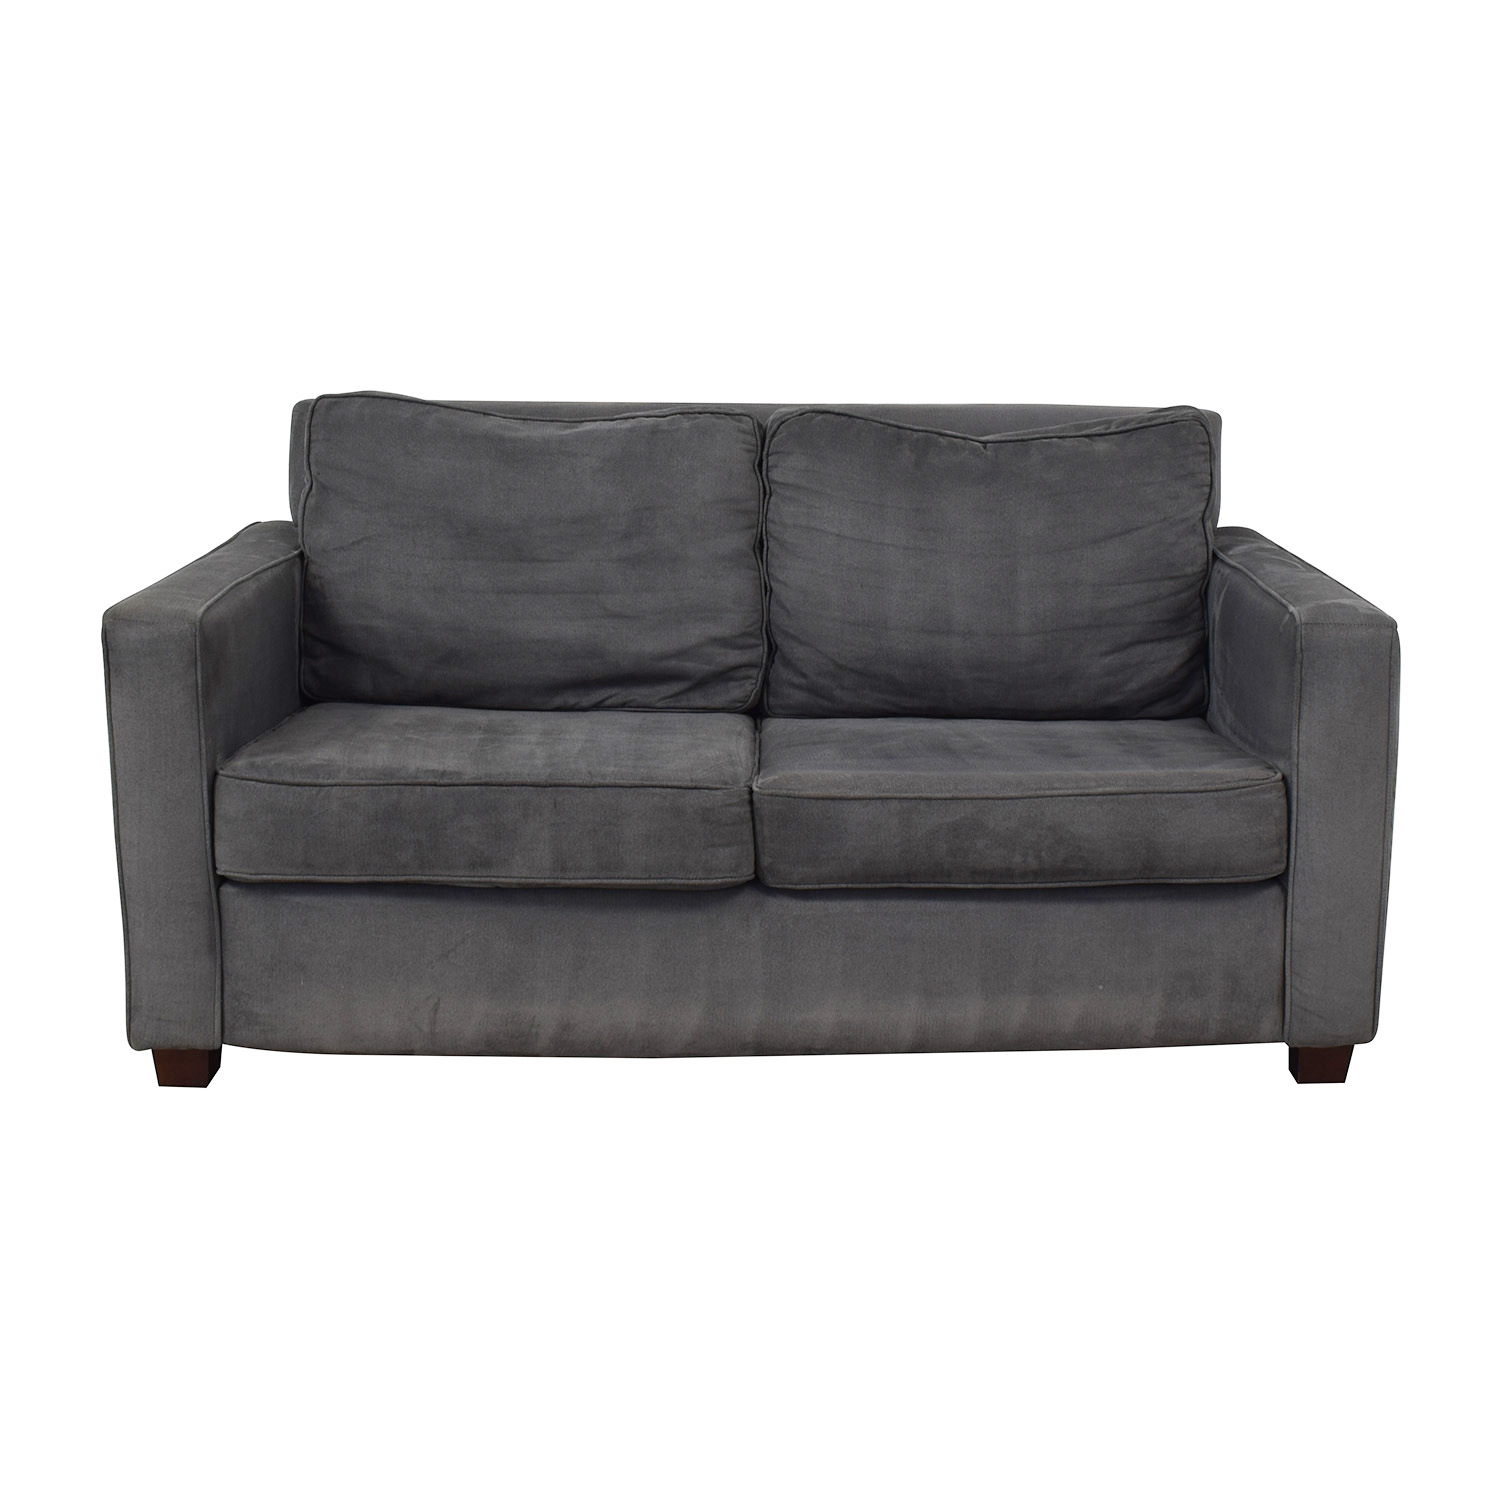 West Elm West Elm Henry Loveseat nj